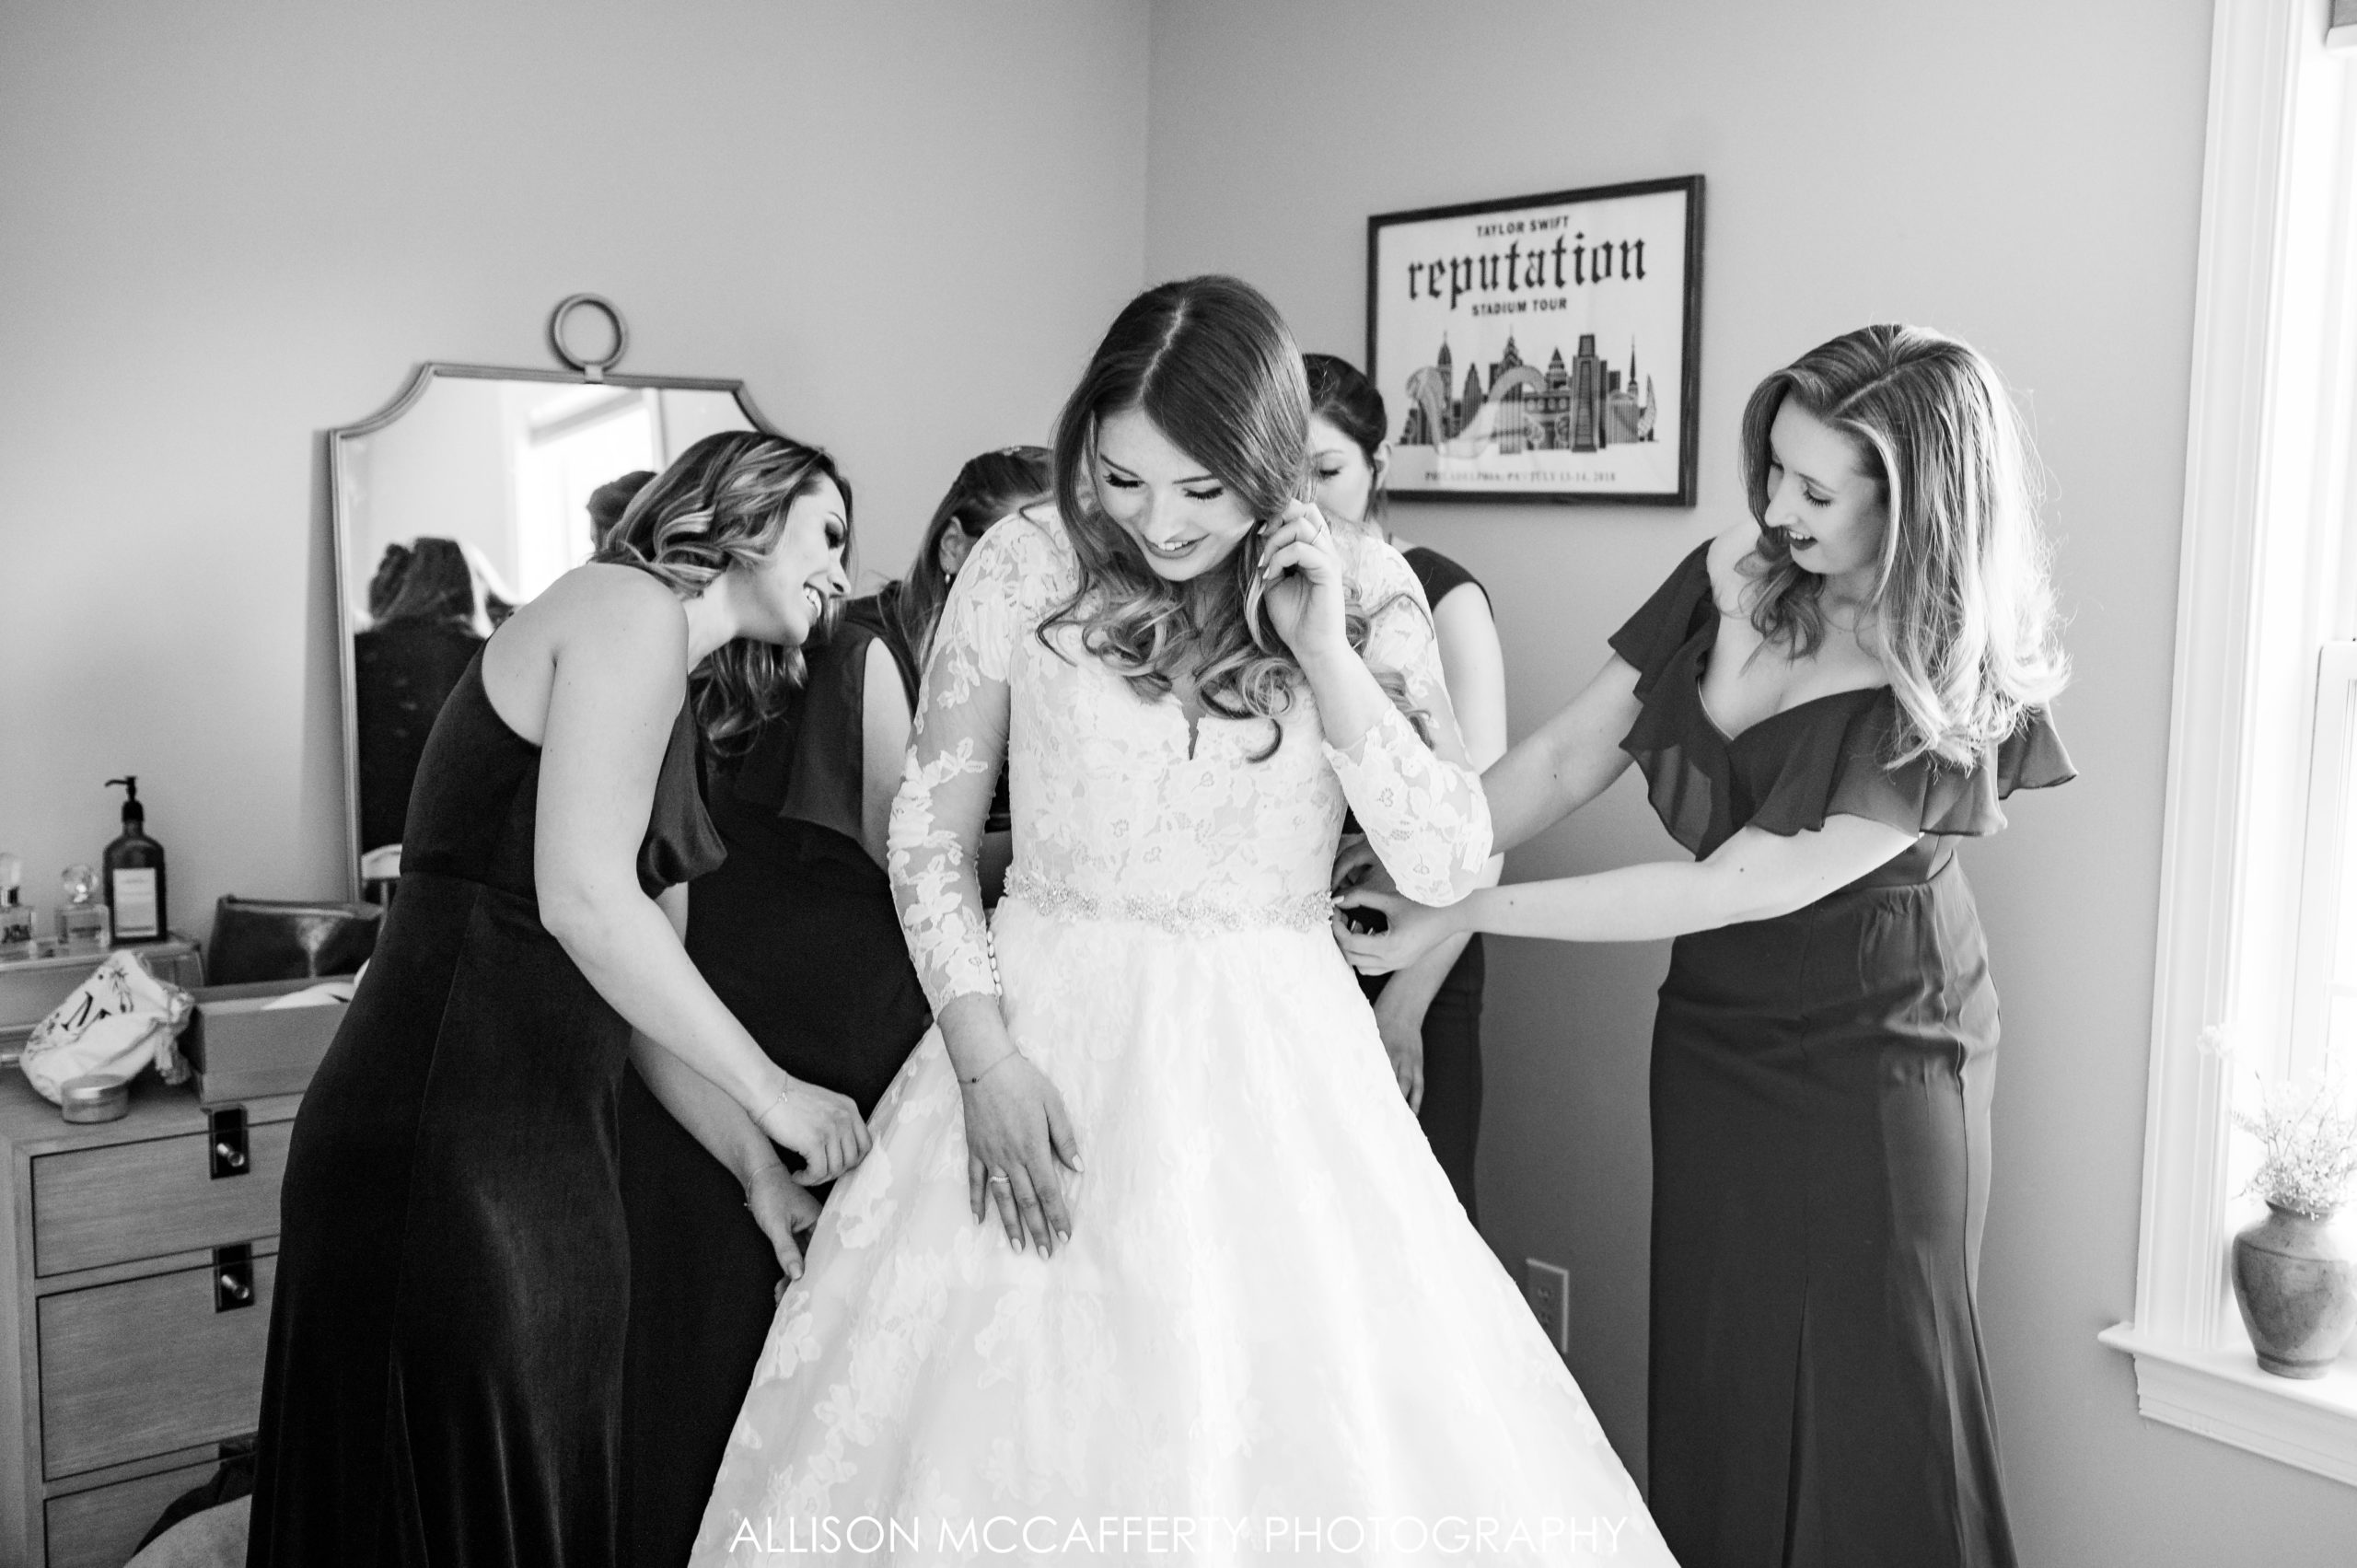 Wedding Day Photos in Black and White